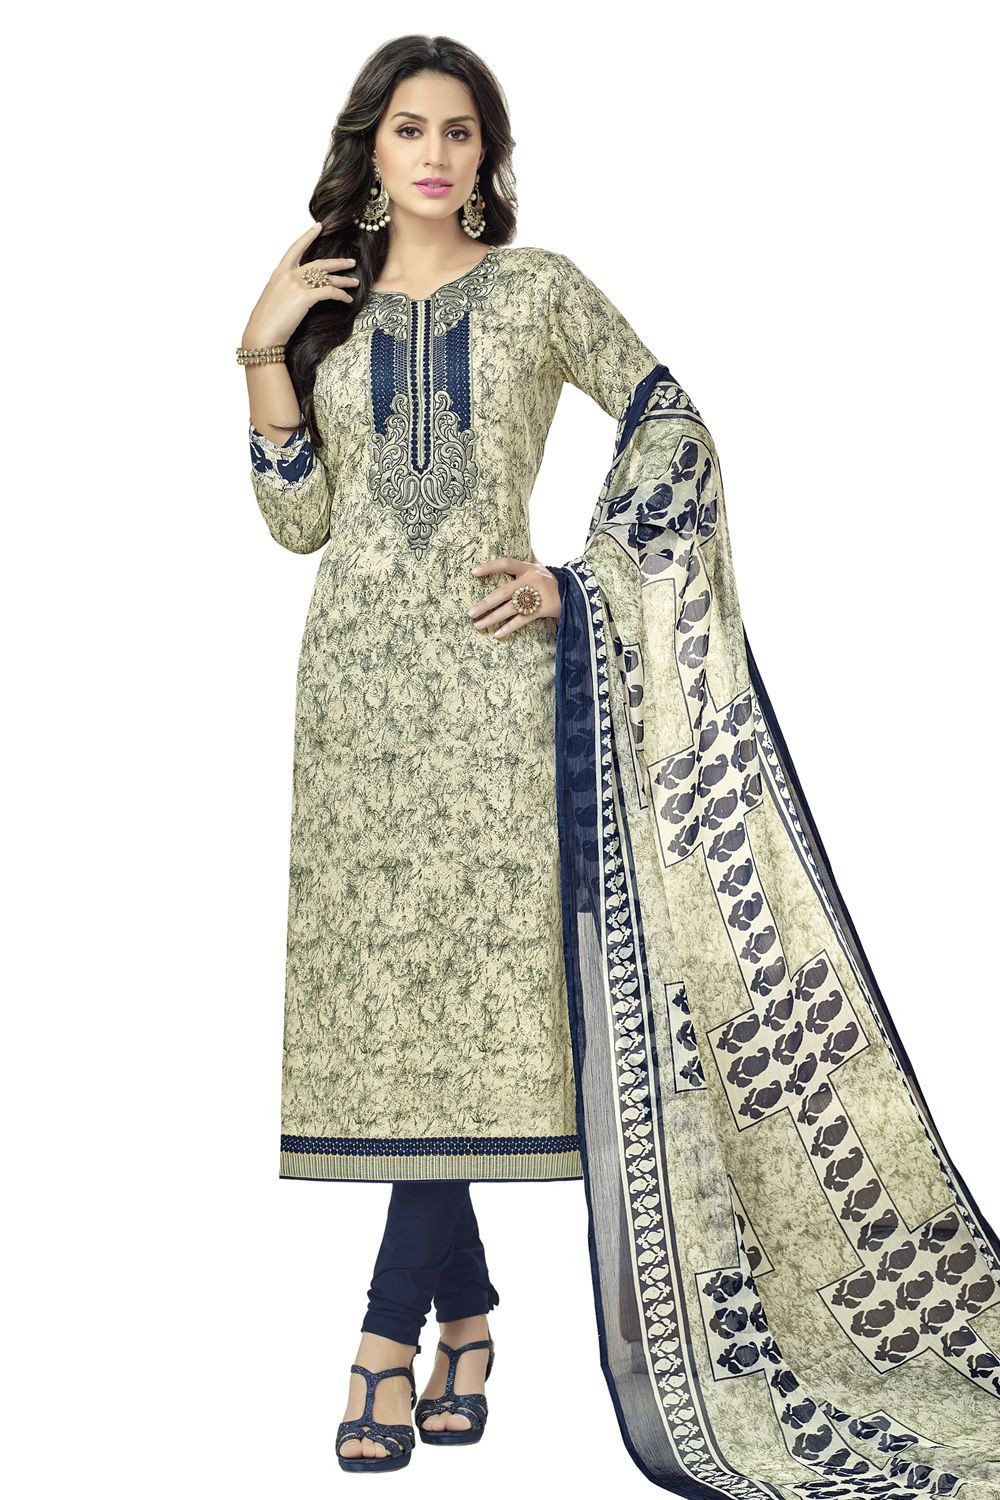 Now discover the new style of fashion by wearing stunning ethnic